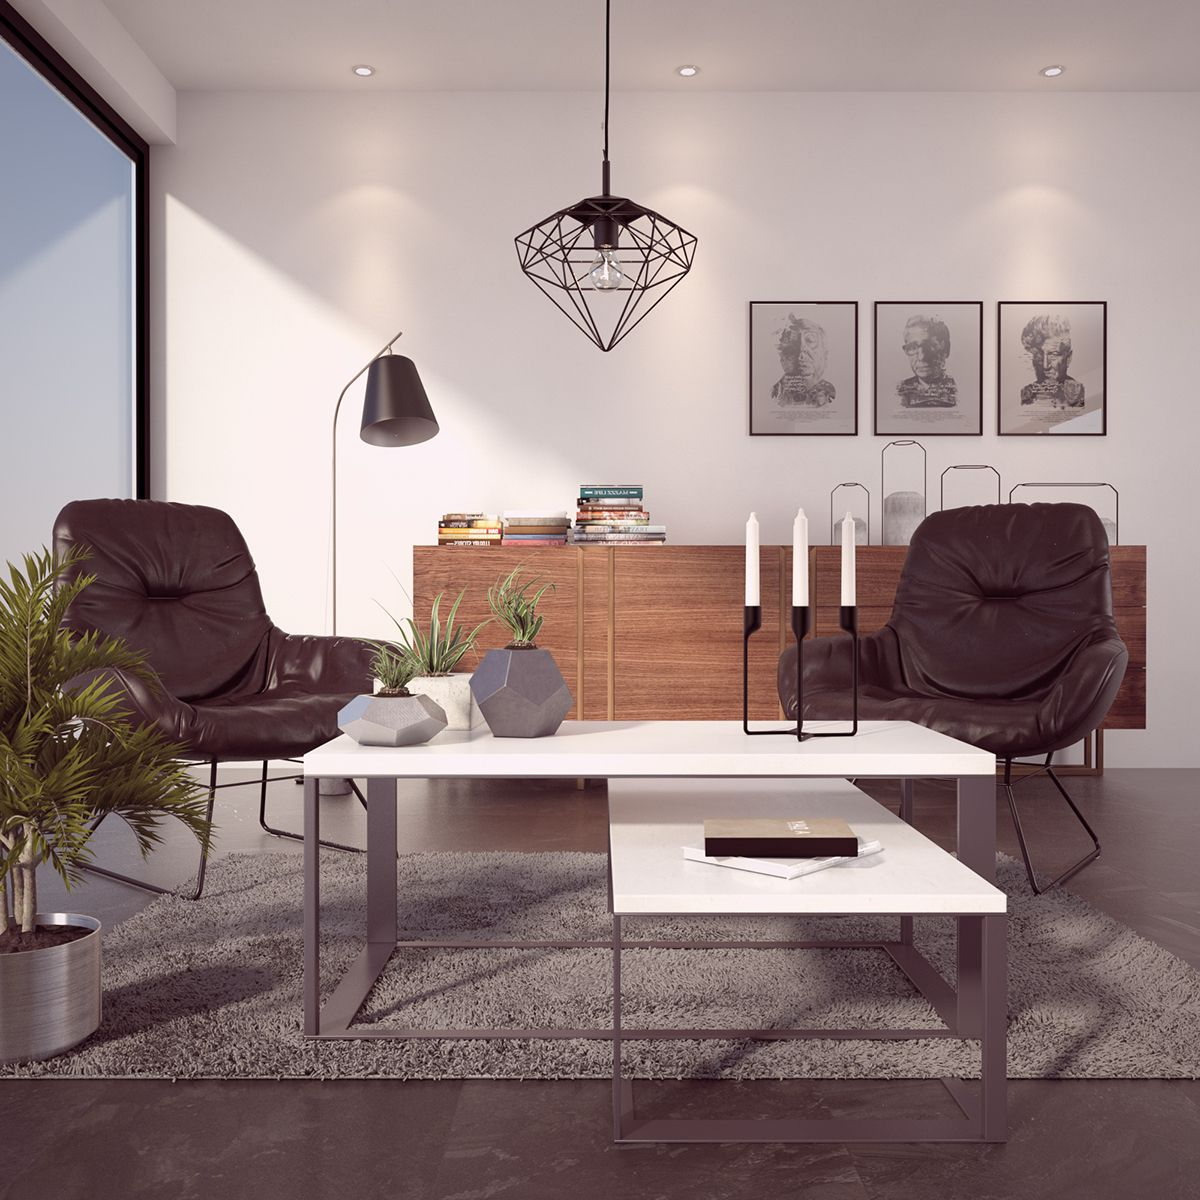 Free 3d model interior vray 3ds max on behance interier for 3ds max design